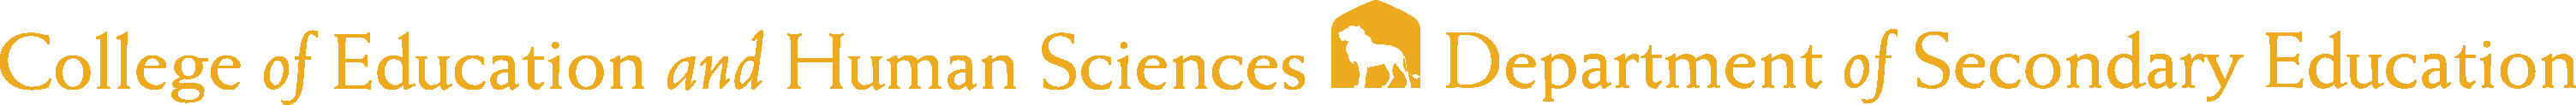 College of Education and Human Services - Secondary Education Logo - Gold - Version 2